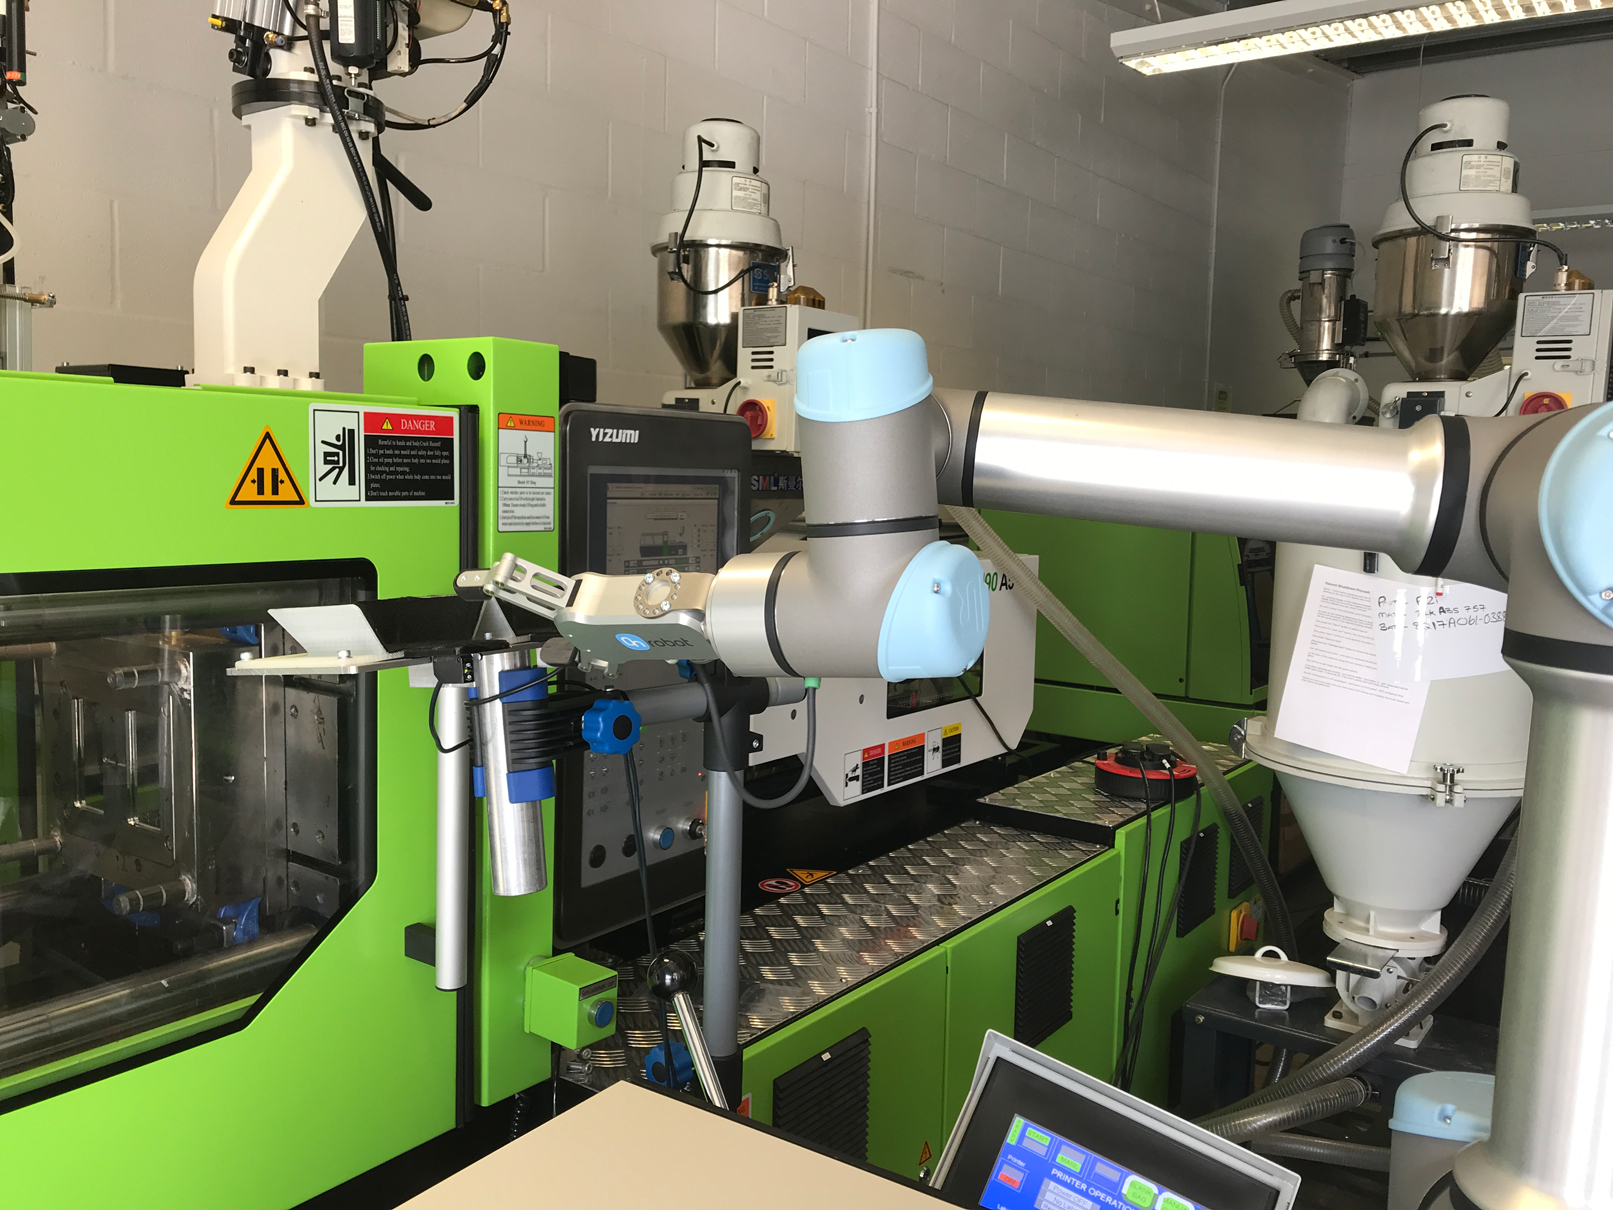 Adept injection moulding